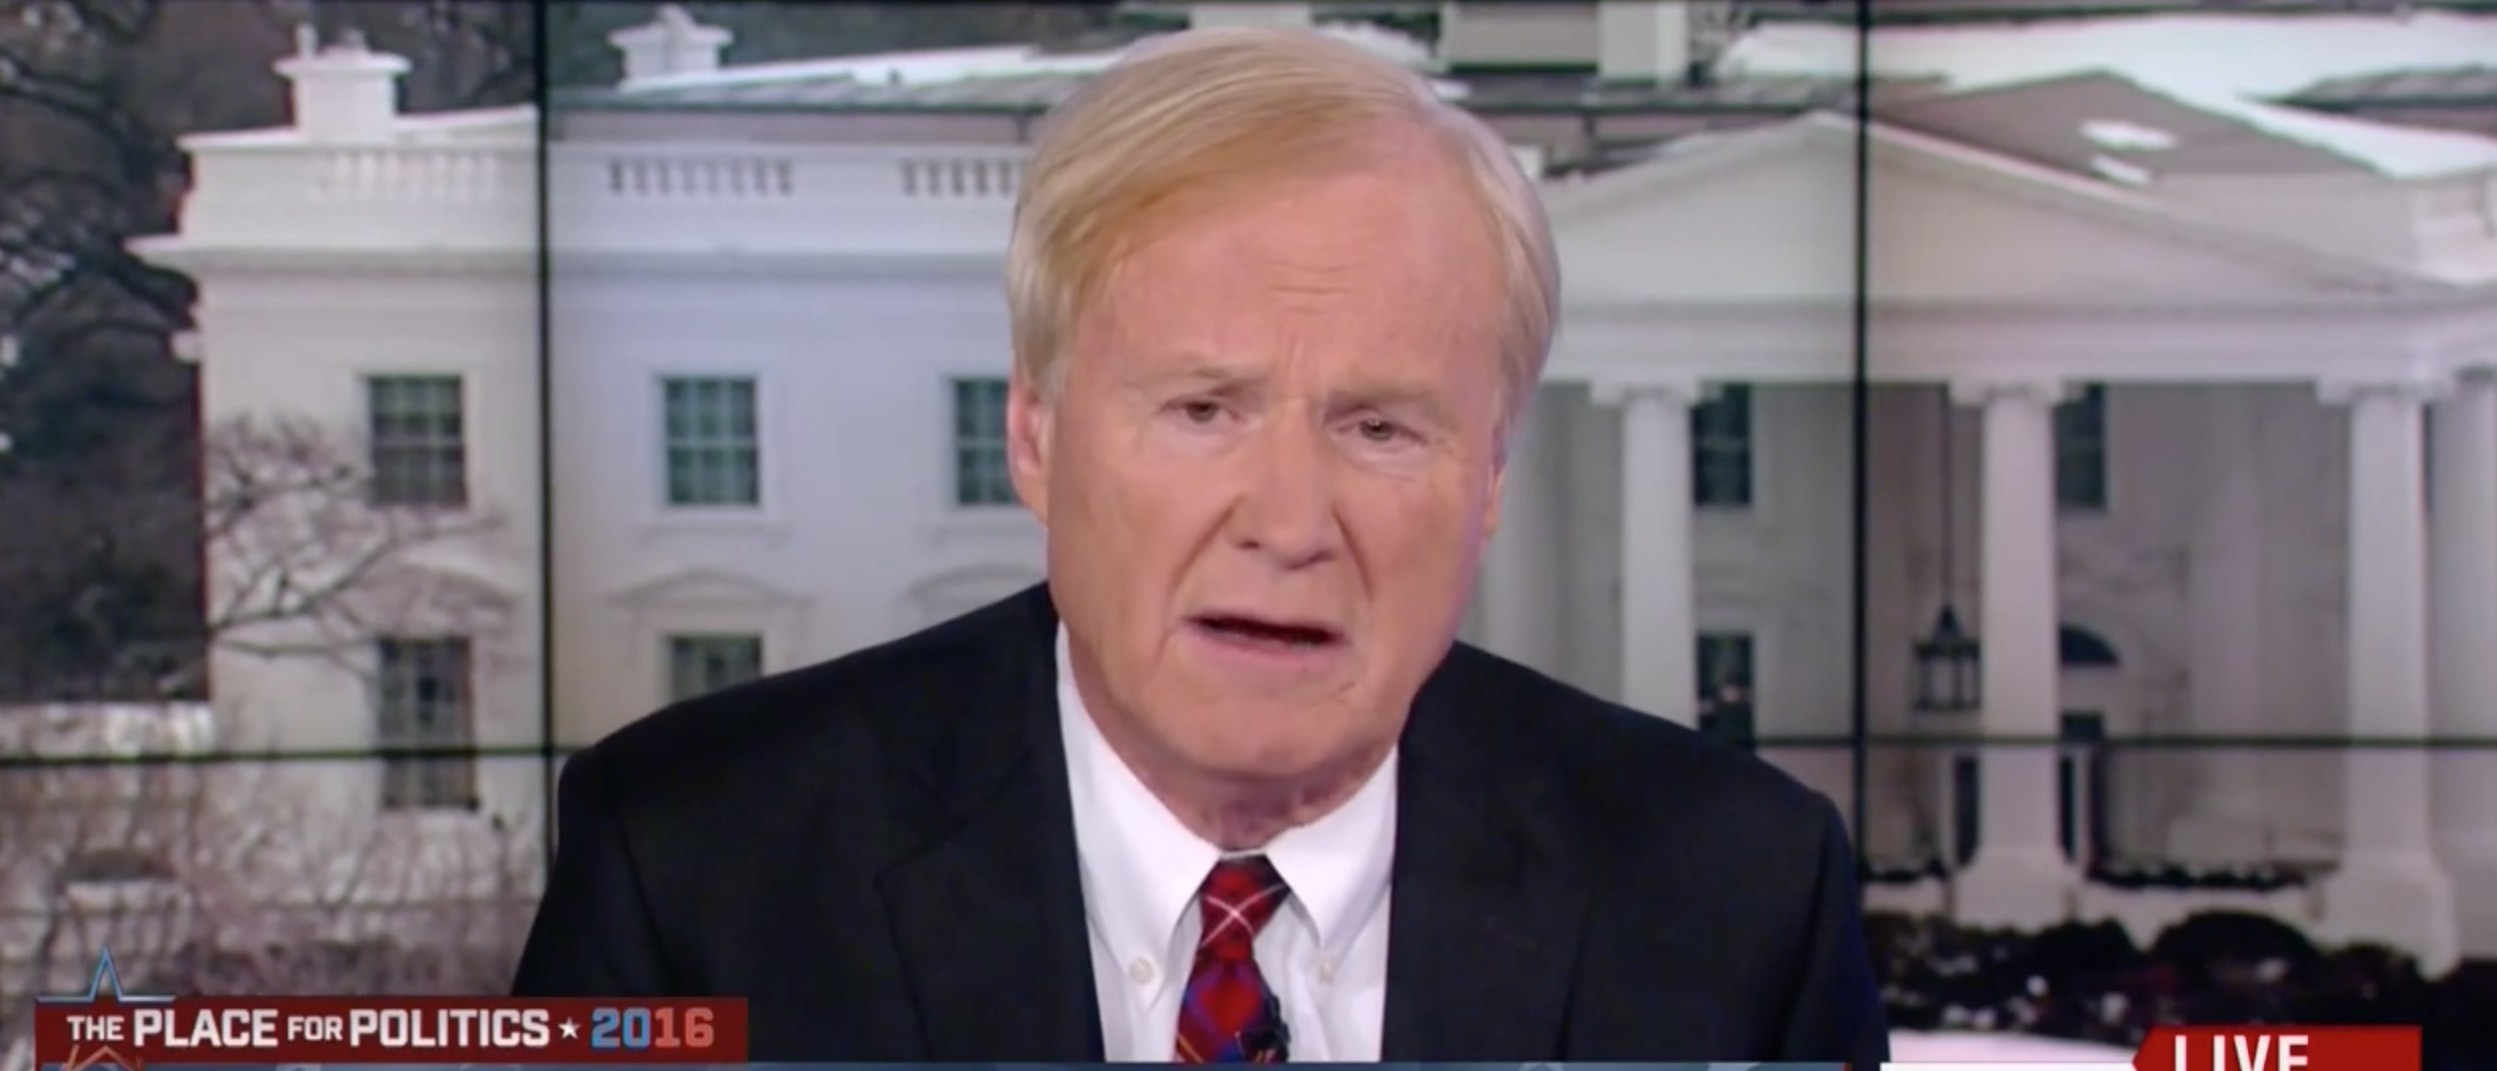 MSNBC's Matthews: There's A 'Vast Right-Wing Conspiracy' Against Hillary Clinton [screen shot MSNBC]